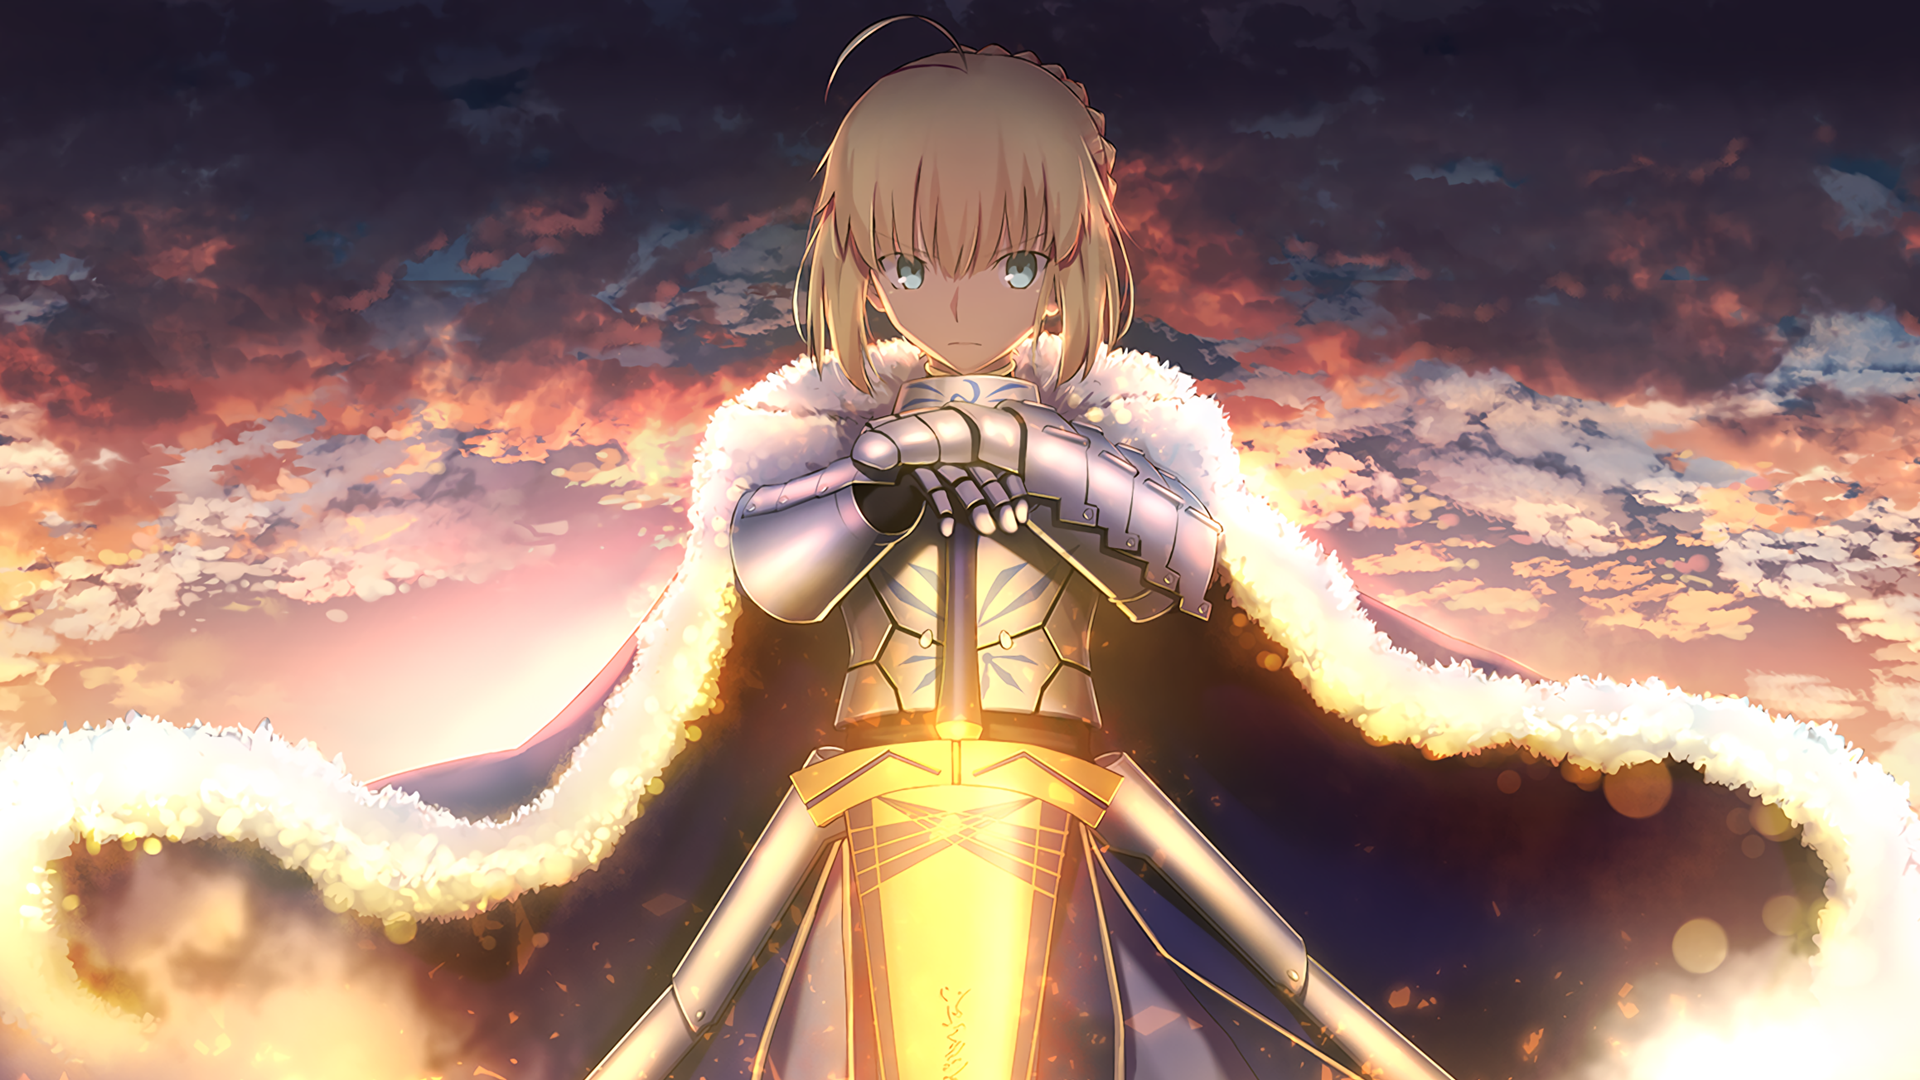 Saber (Fate Series), HQ Backgrounds HD wallpapers